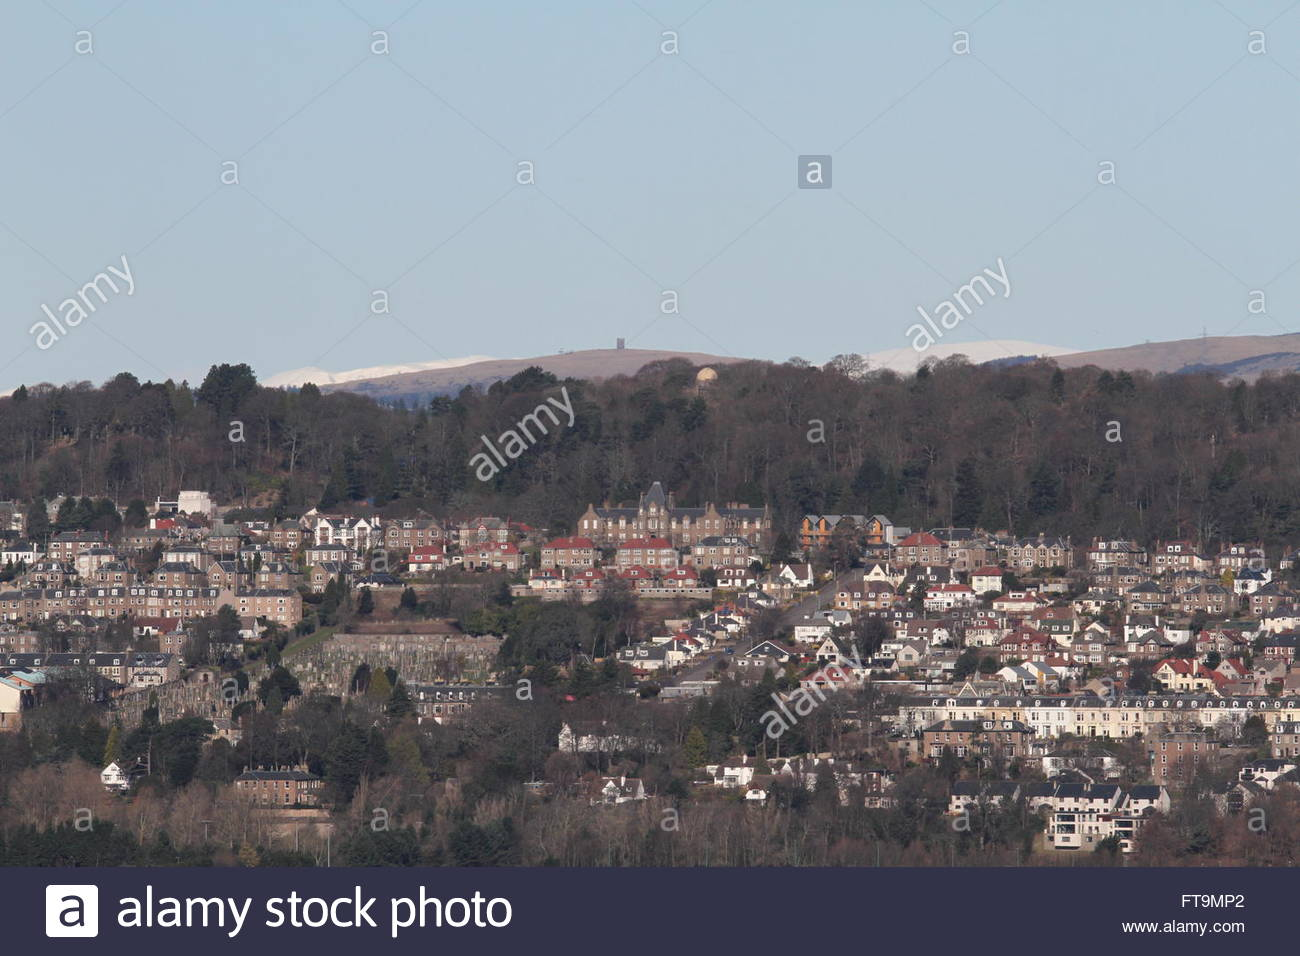 Distant view of Kinpurney Tower on Kinpurney hill Newtyle Scotland  March 2016 - Stock Image